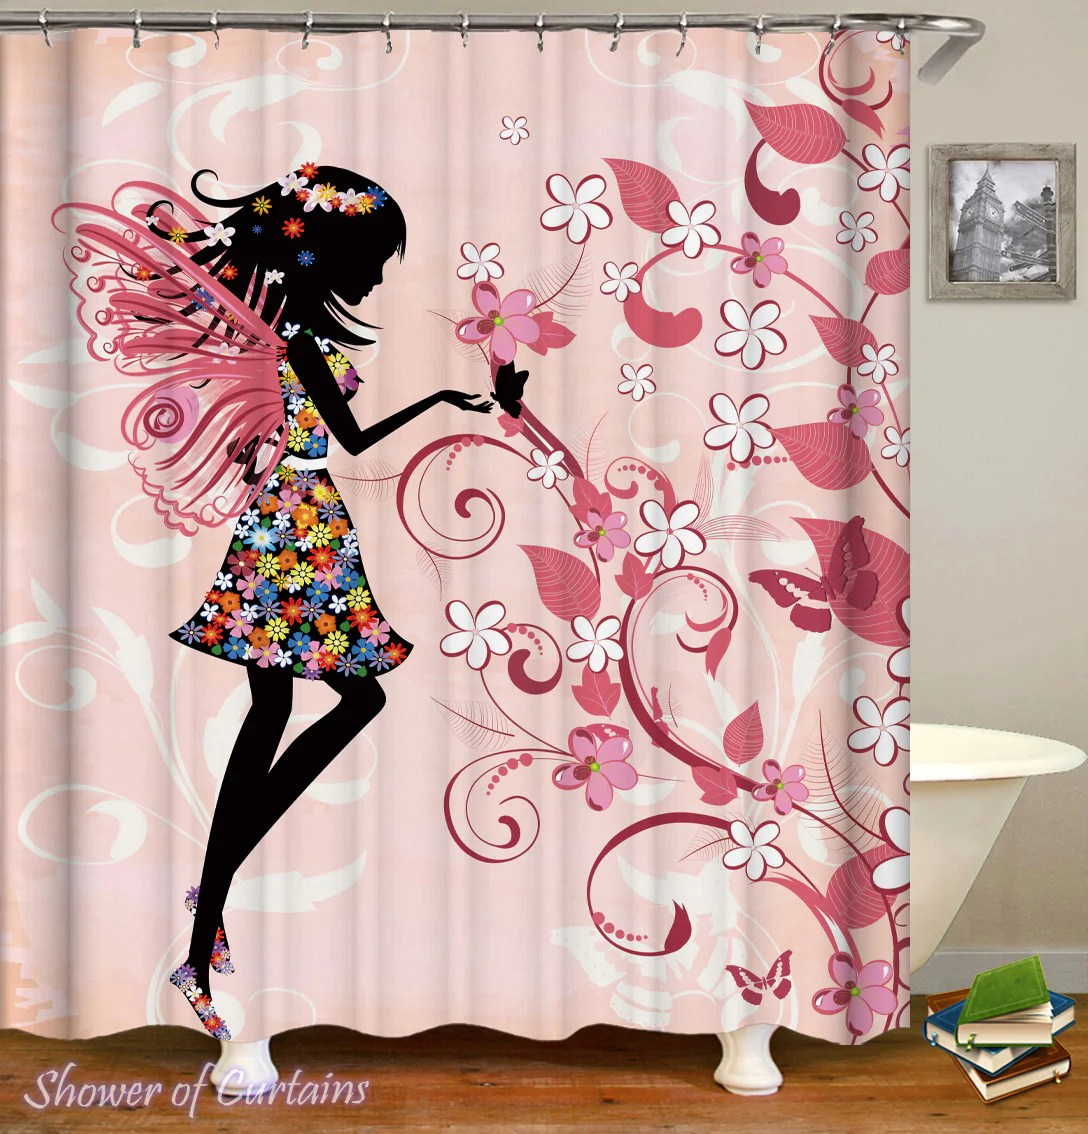 Cute Girly Shower Curtains Girly Black Figure Over Pink